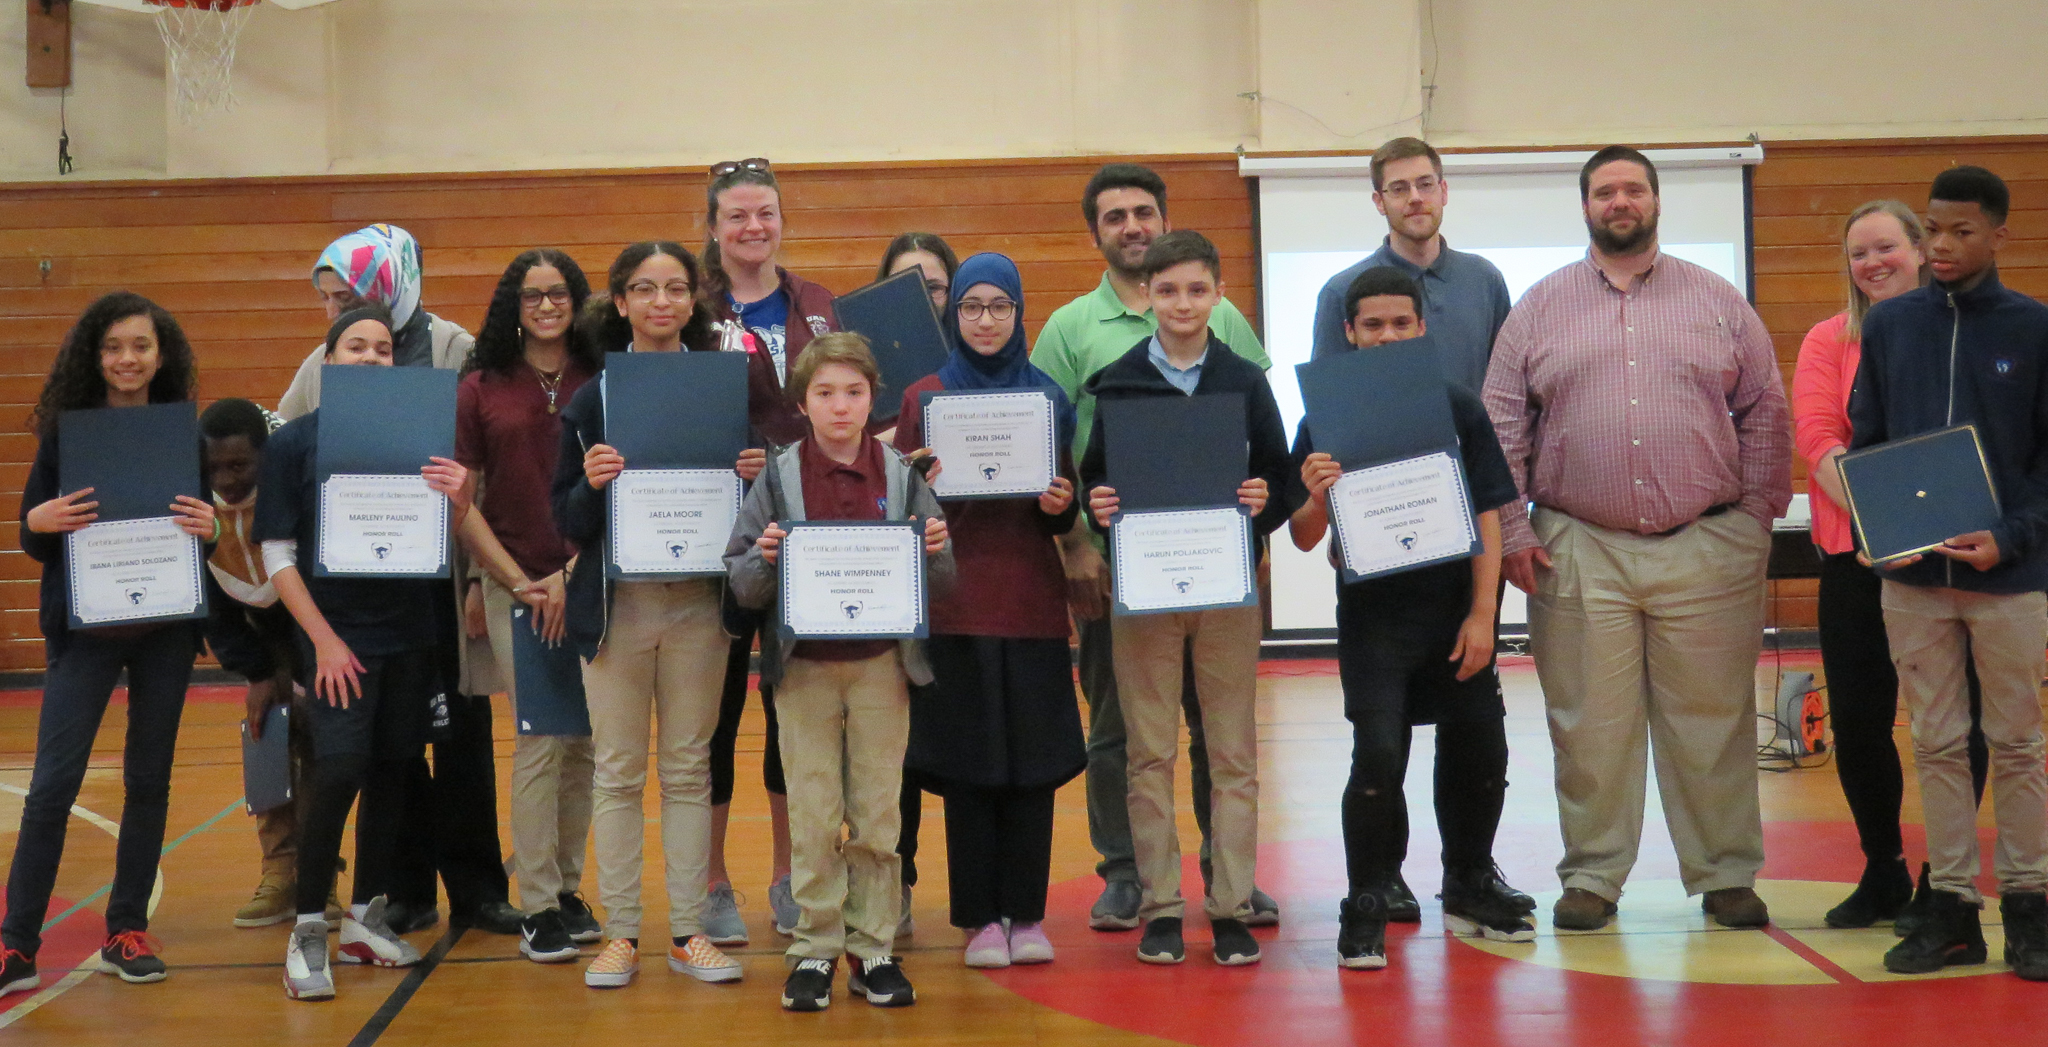 UASCS students receive academic excellence and citizenship performance awards